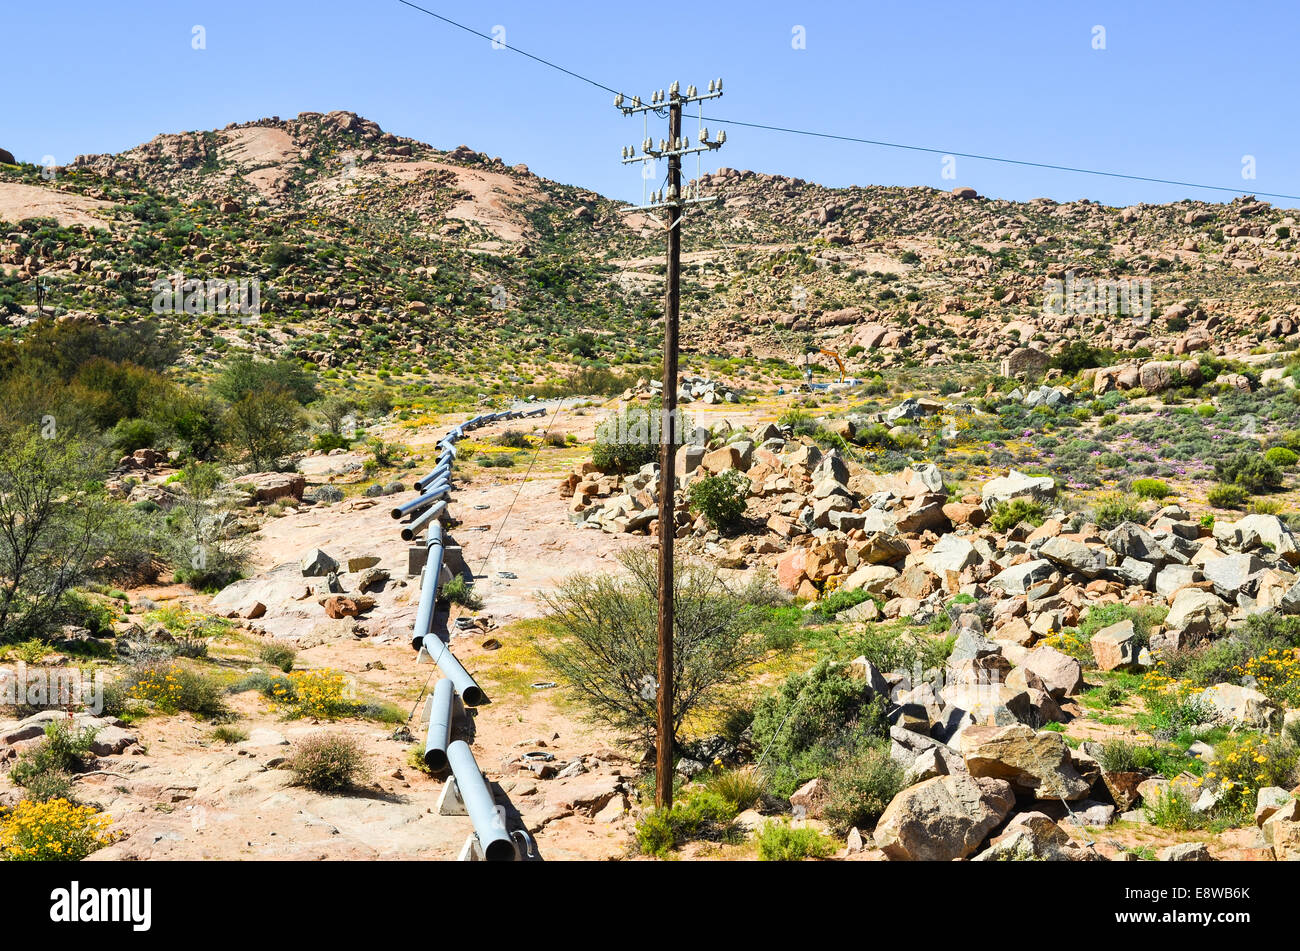 Construction of the water pipeline, Northern Cape, South Africa, bringing water from the Orange river to the city - Stock Image